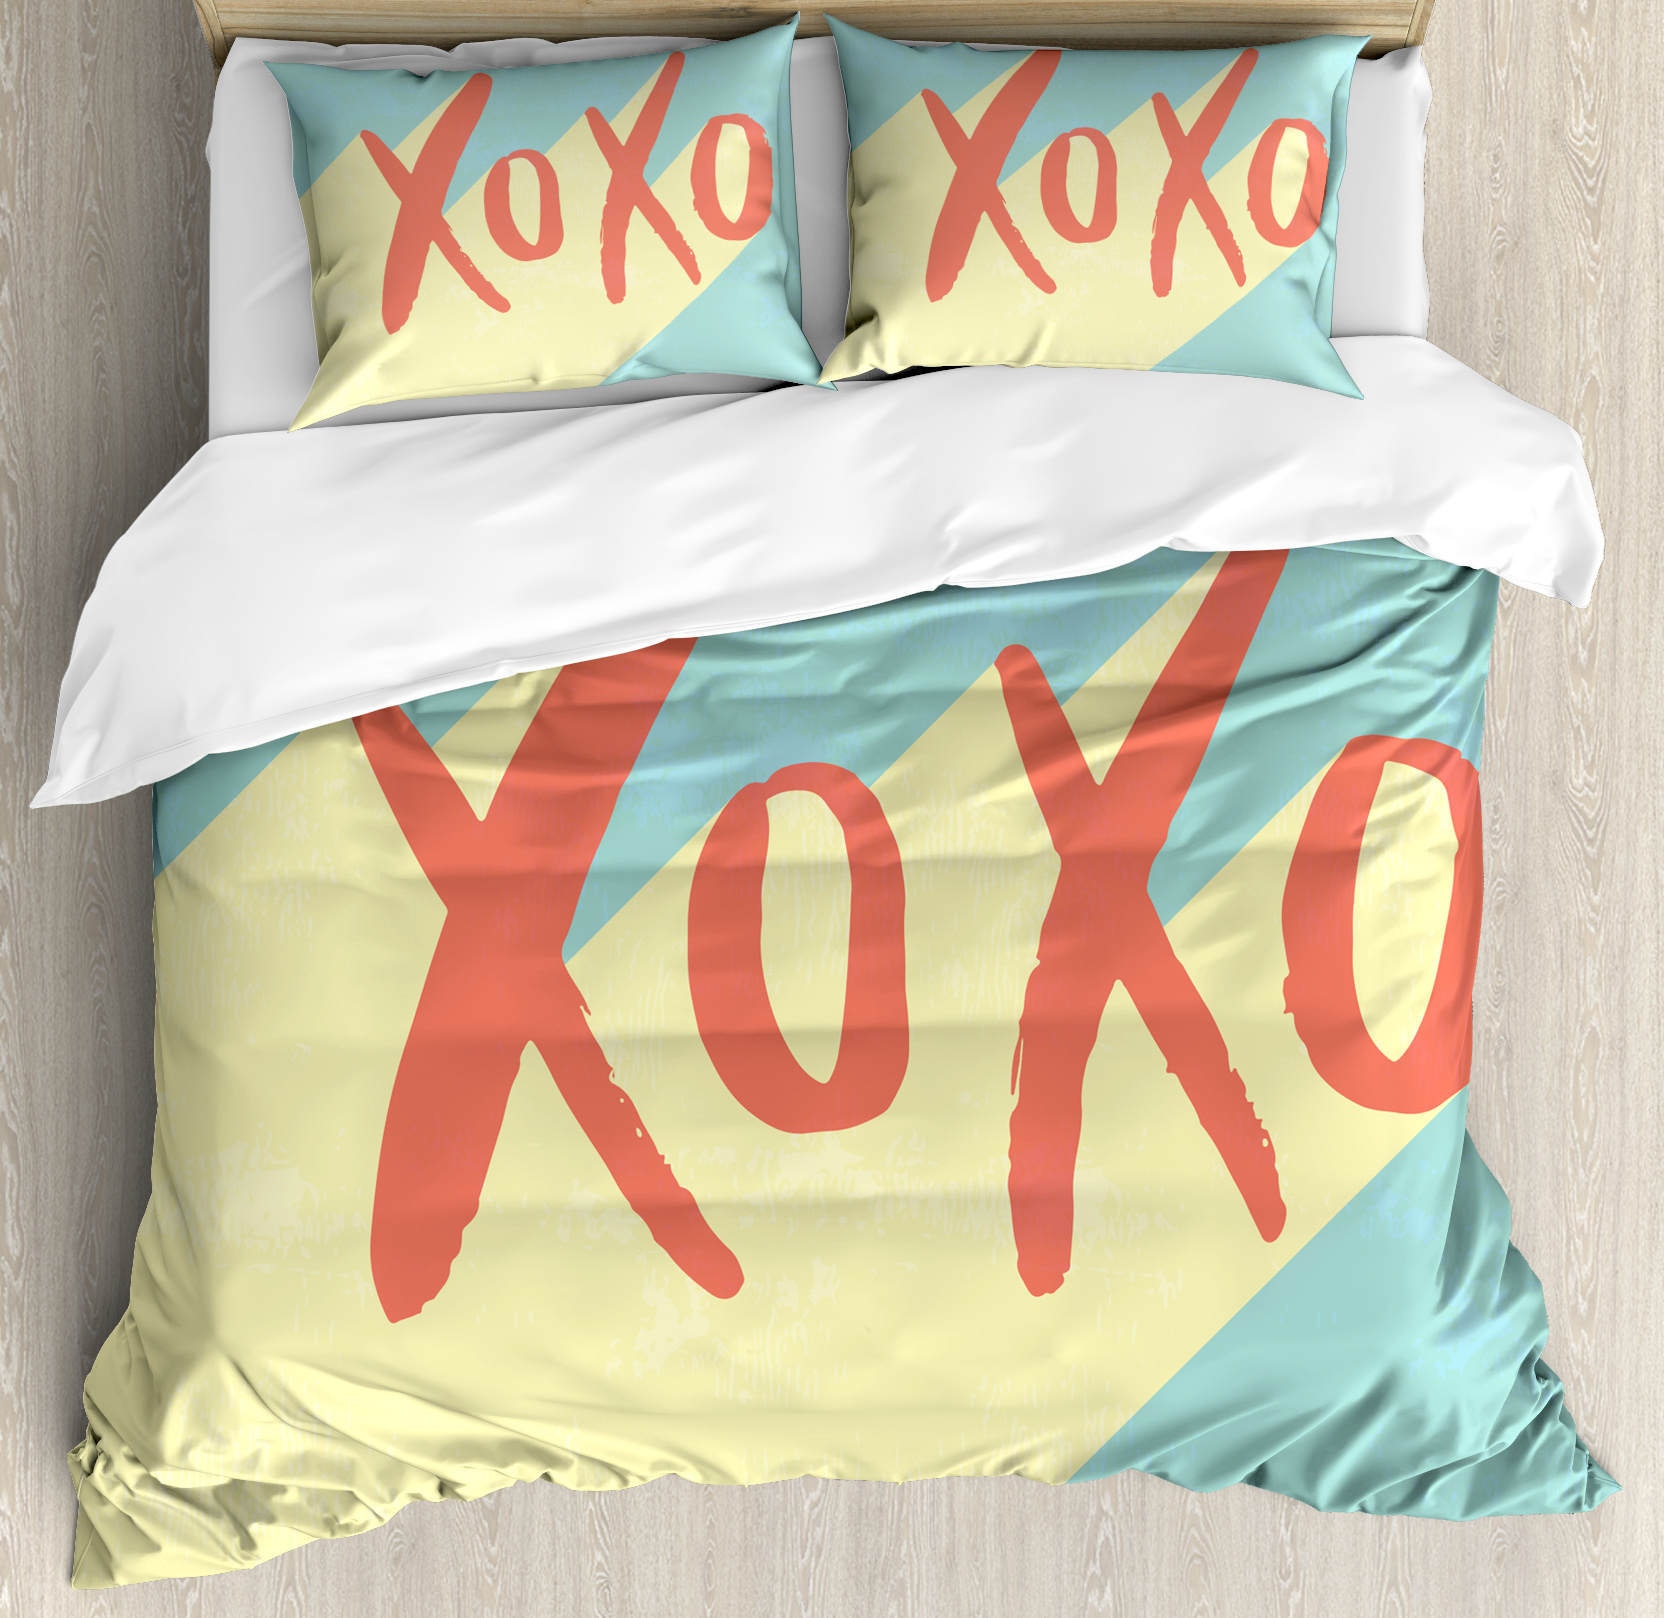 Xo Decor King Size Duvet Cover Set, Pop Art Retro Hugs and Kisses Symbol on Vibrant Illustration, Decorative 3 Piece Bedding Set with 2 Pillow Shams, Turquoise Dark Coral Yellow, by Ambesonne